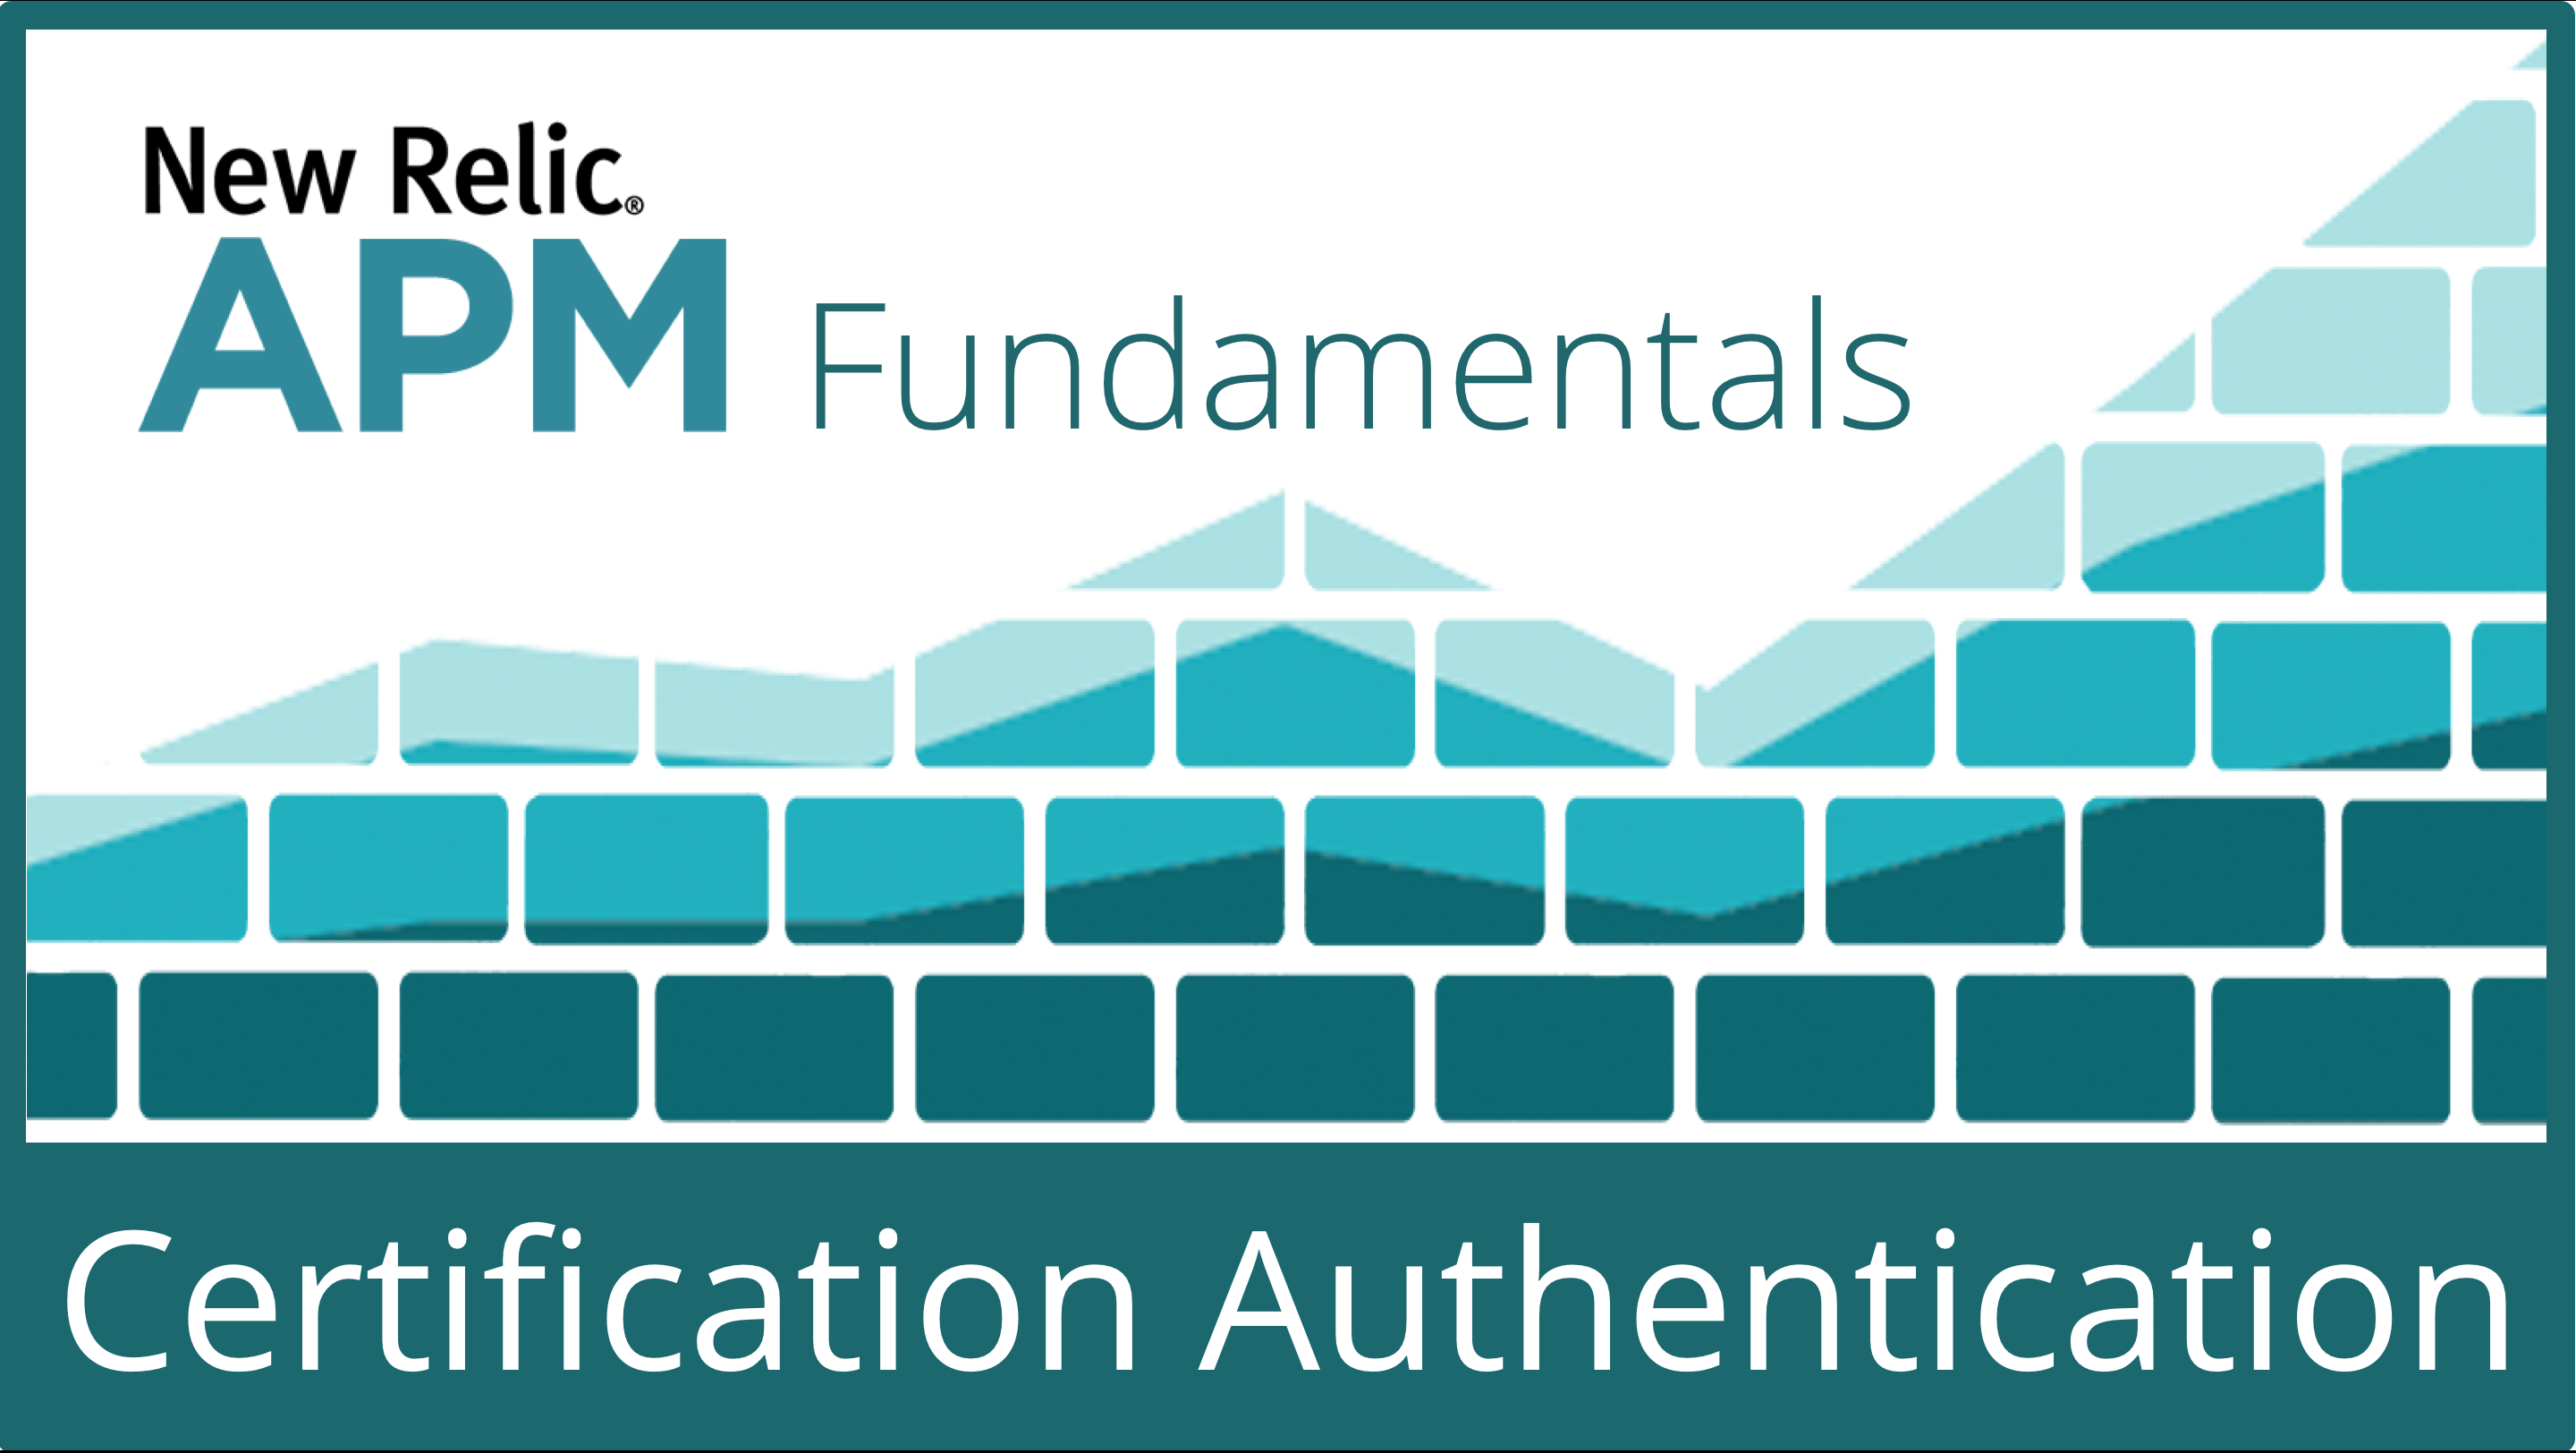 New Relic APM Fundamentals Certification Authentication